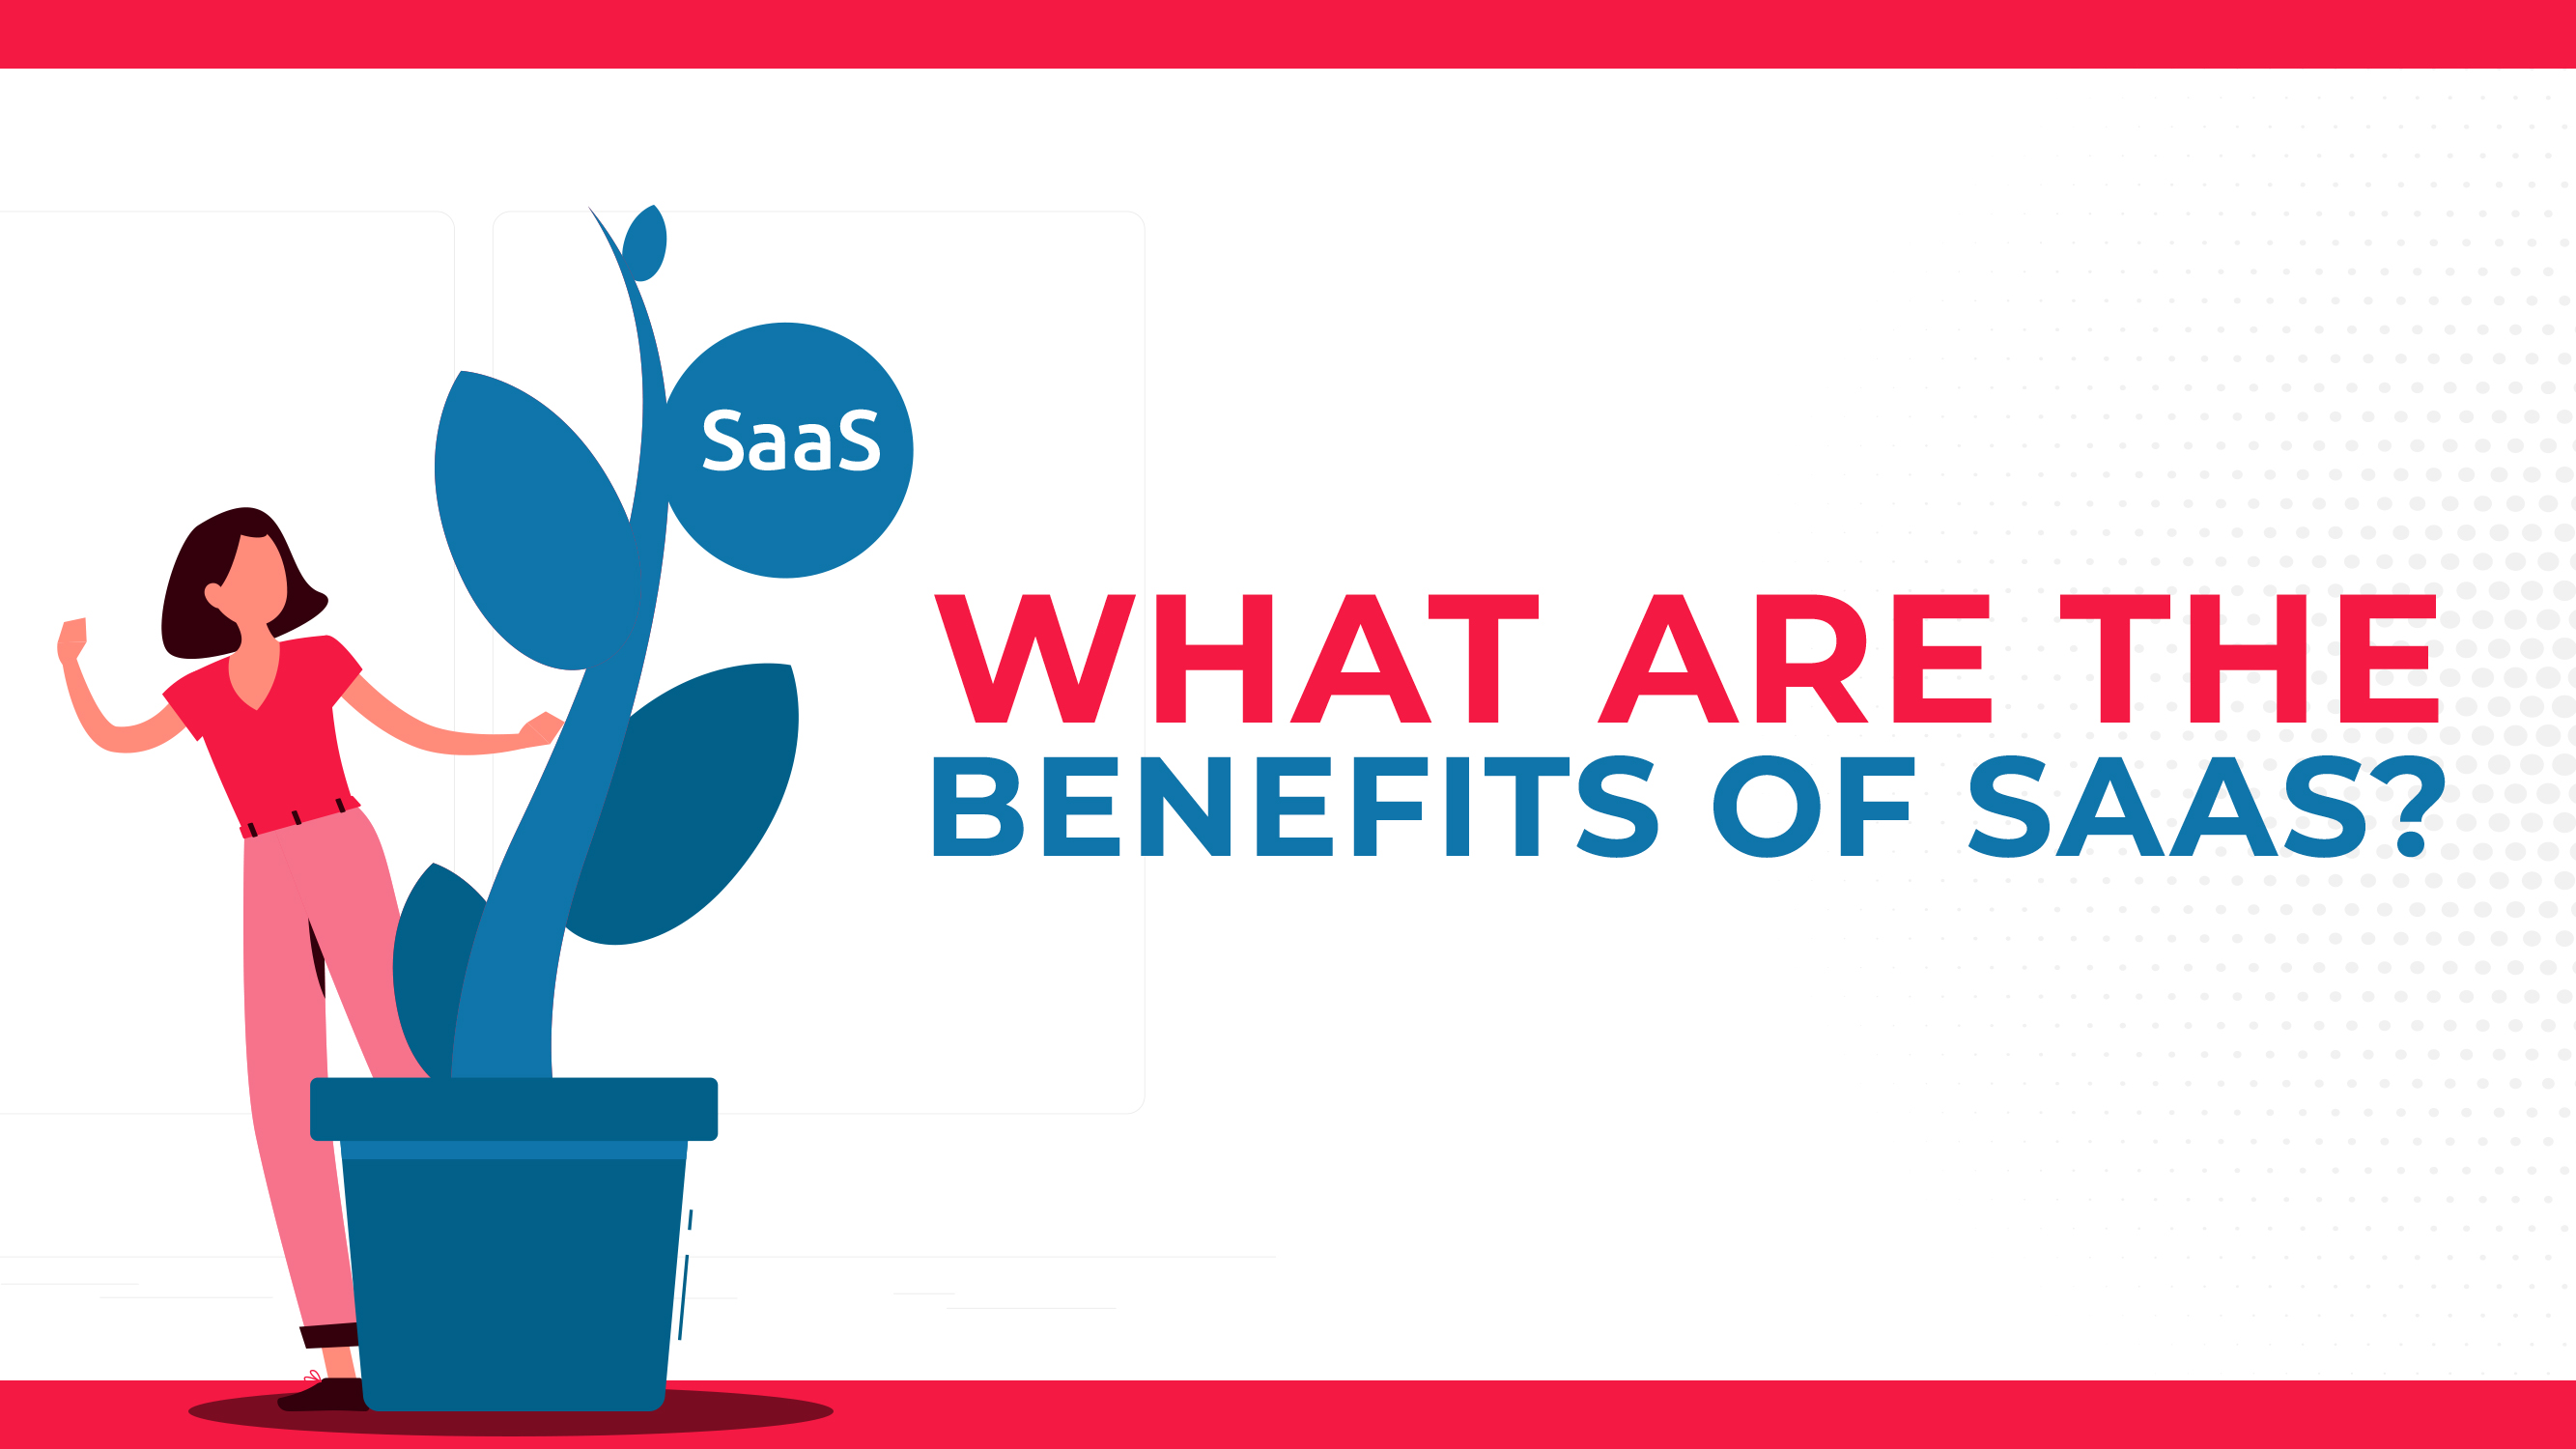 What Are The Benefits of SAAS?